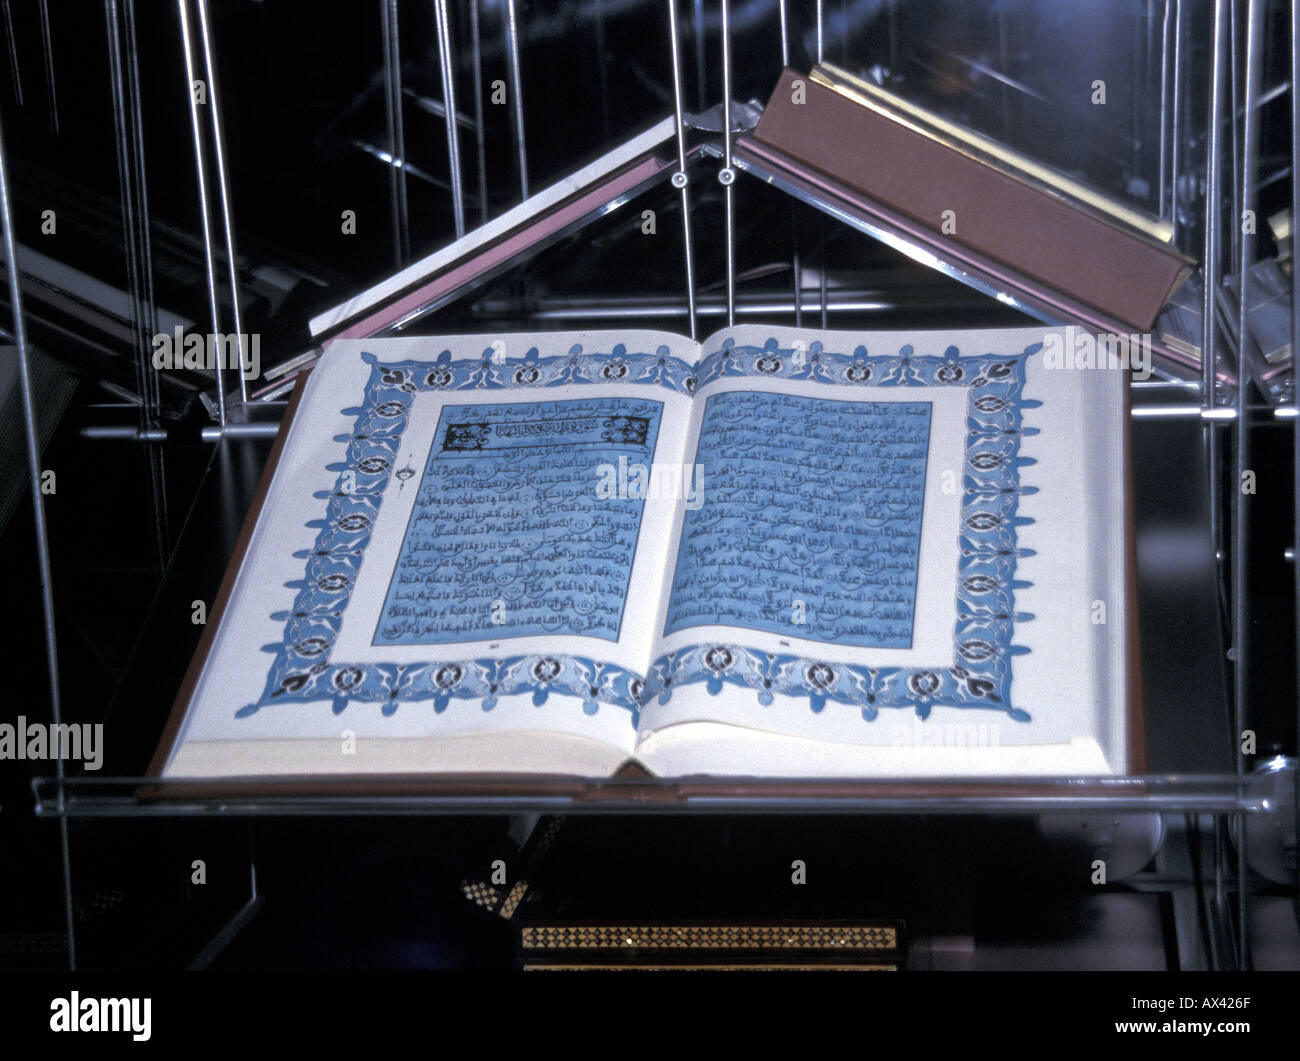 Illuminated Qur'an displayed in the Beit al Qur'an Museum in Bahrain - Stock Image